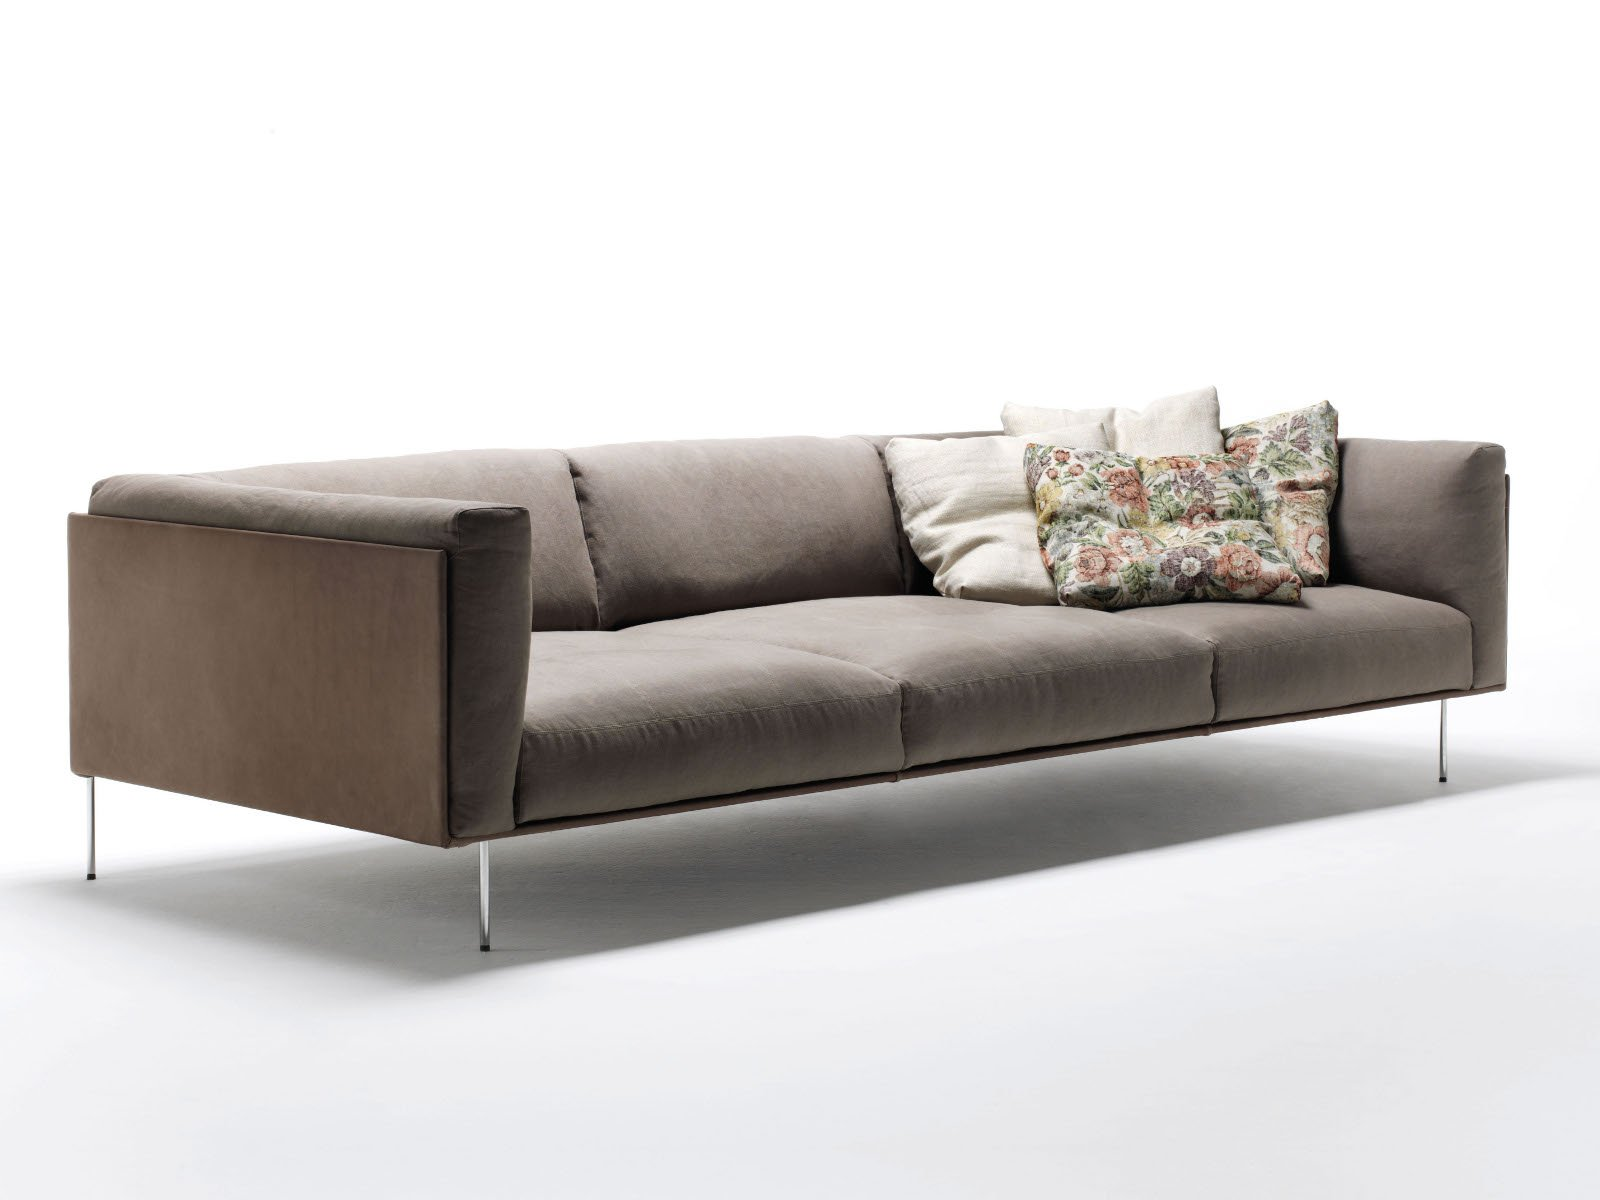 Rod divano by living divani design piero lissoni for Sofa divano